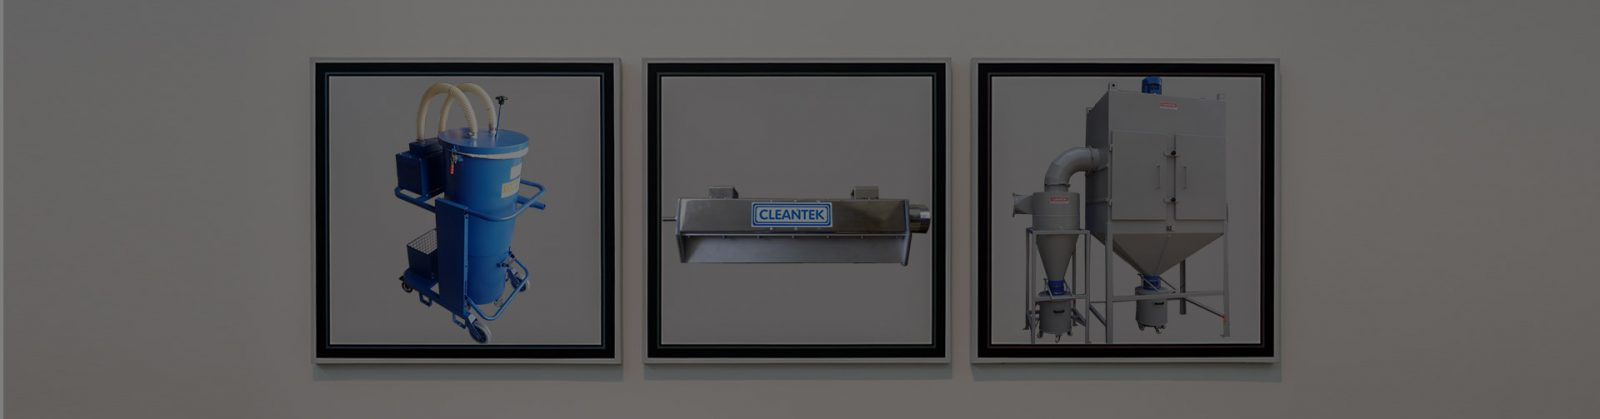 cleantek products